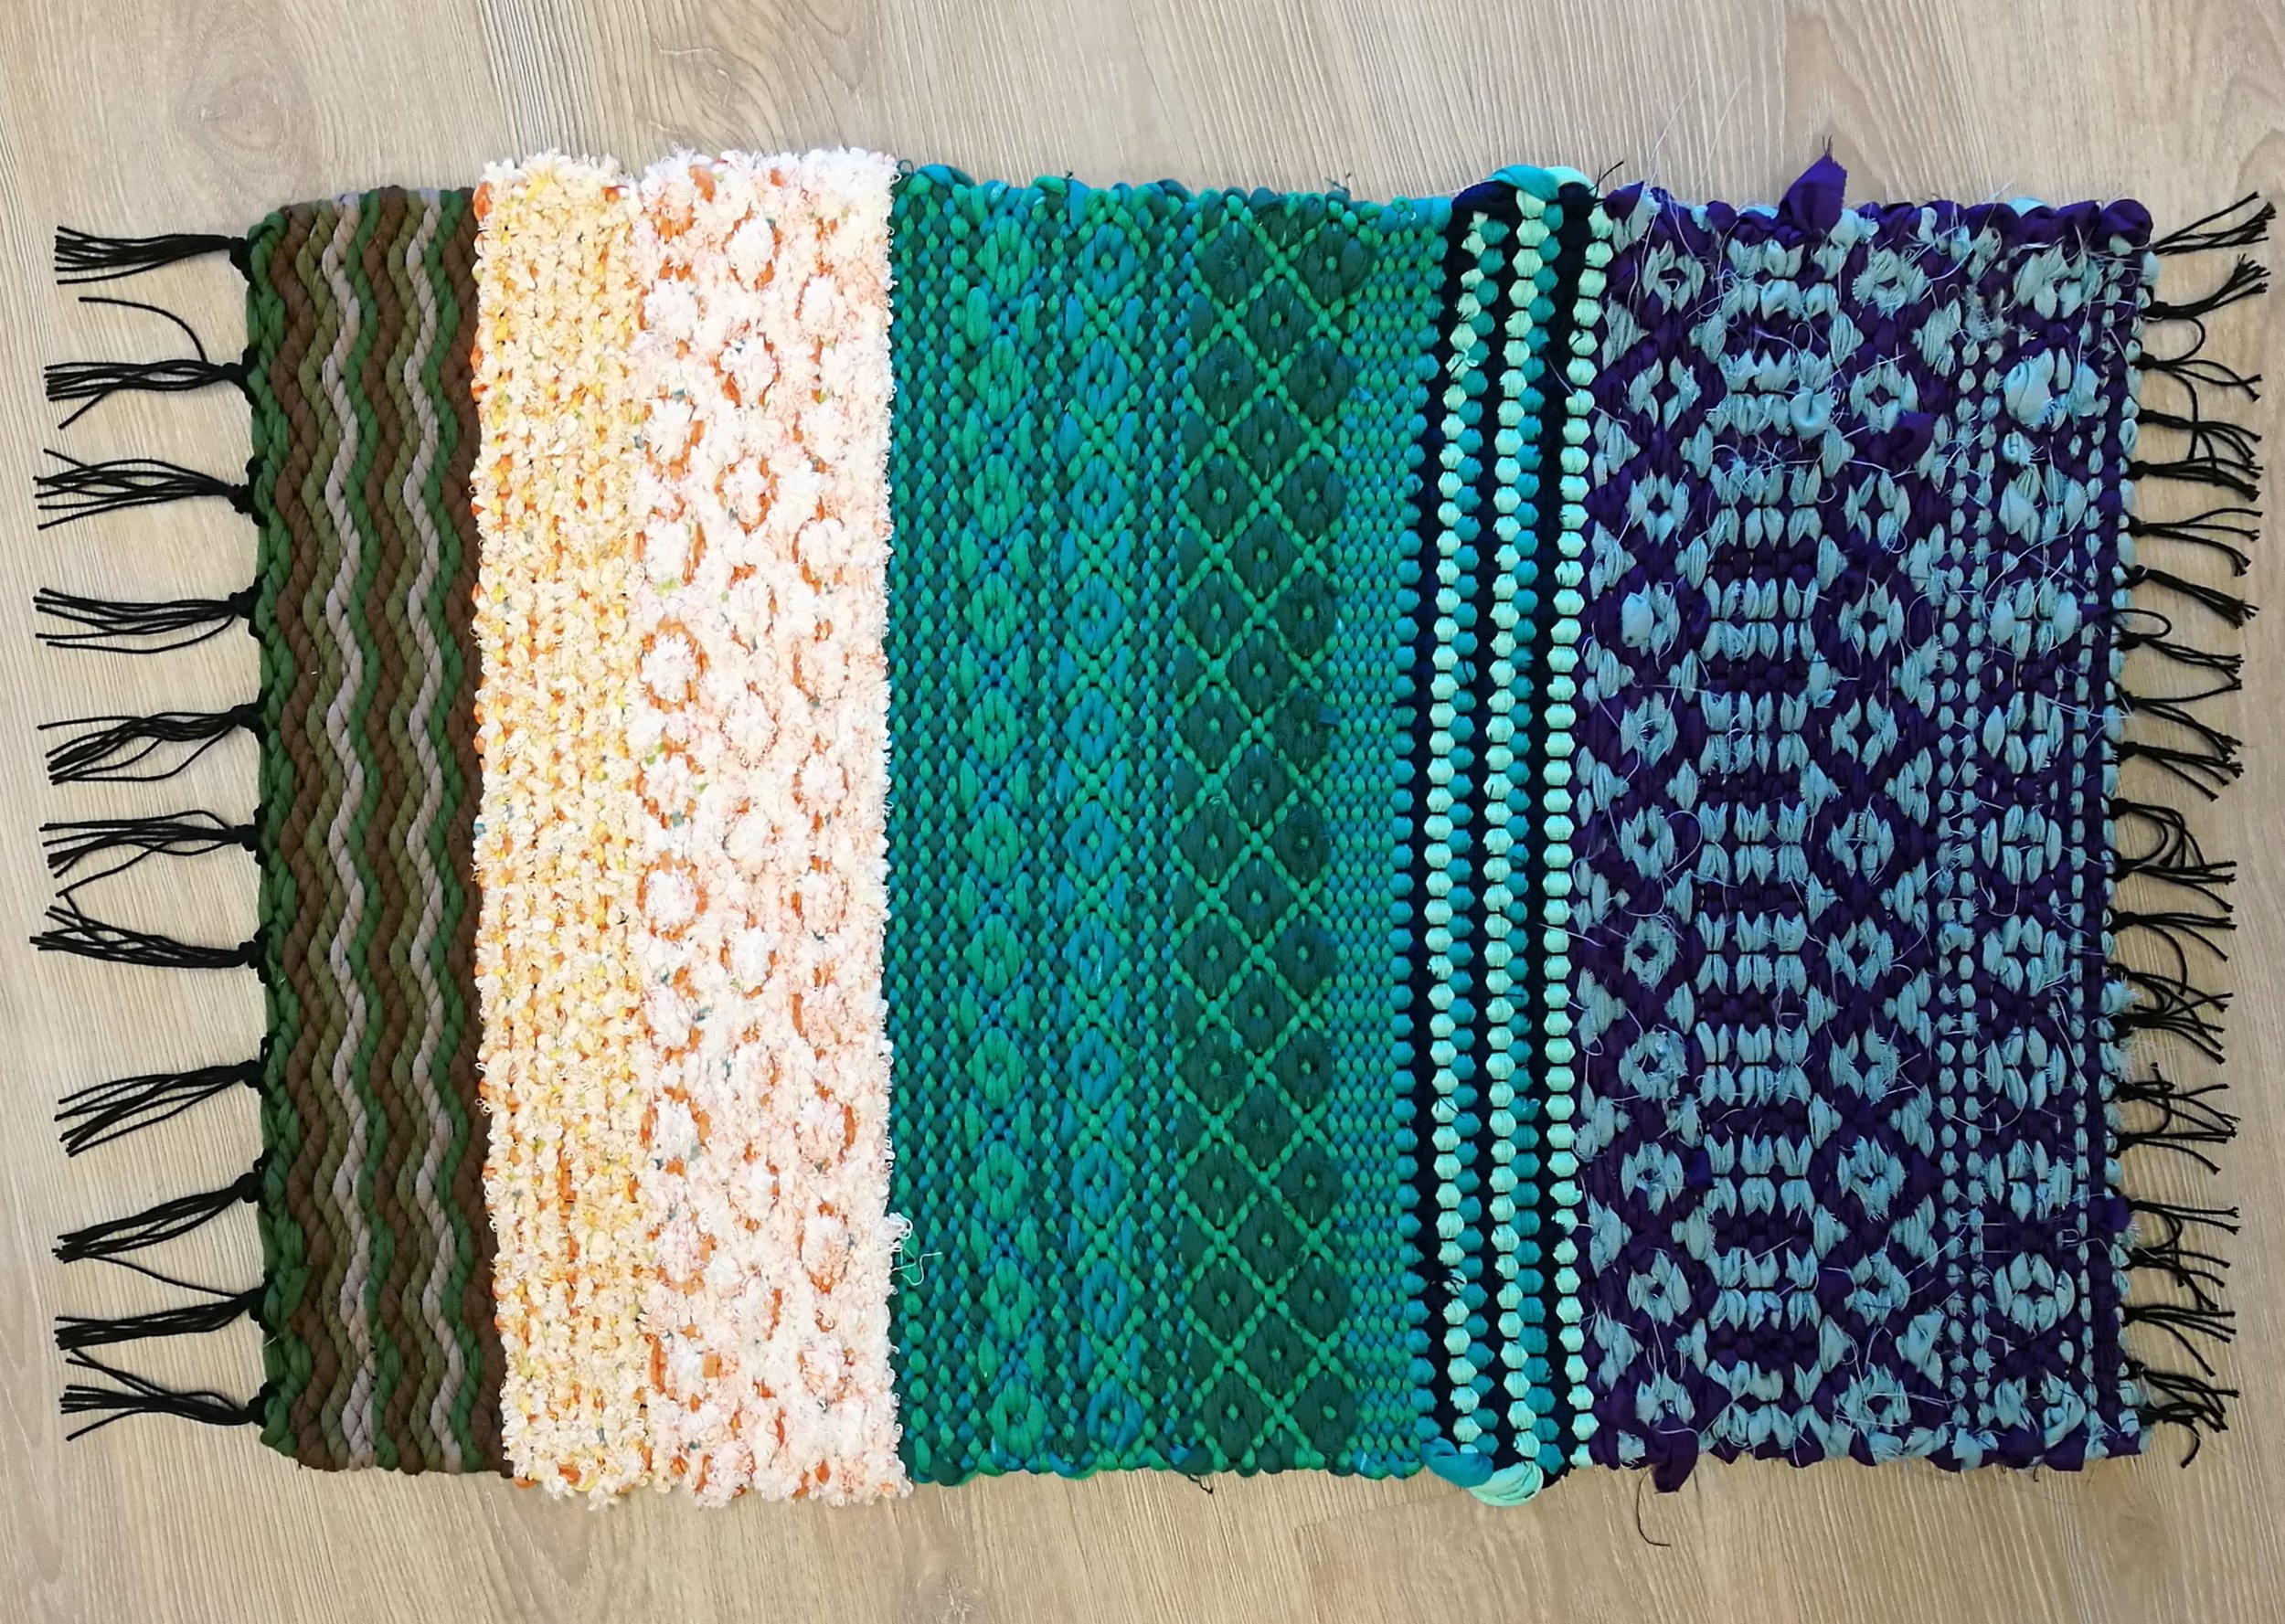 There are plenty of pattern options in this warp.